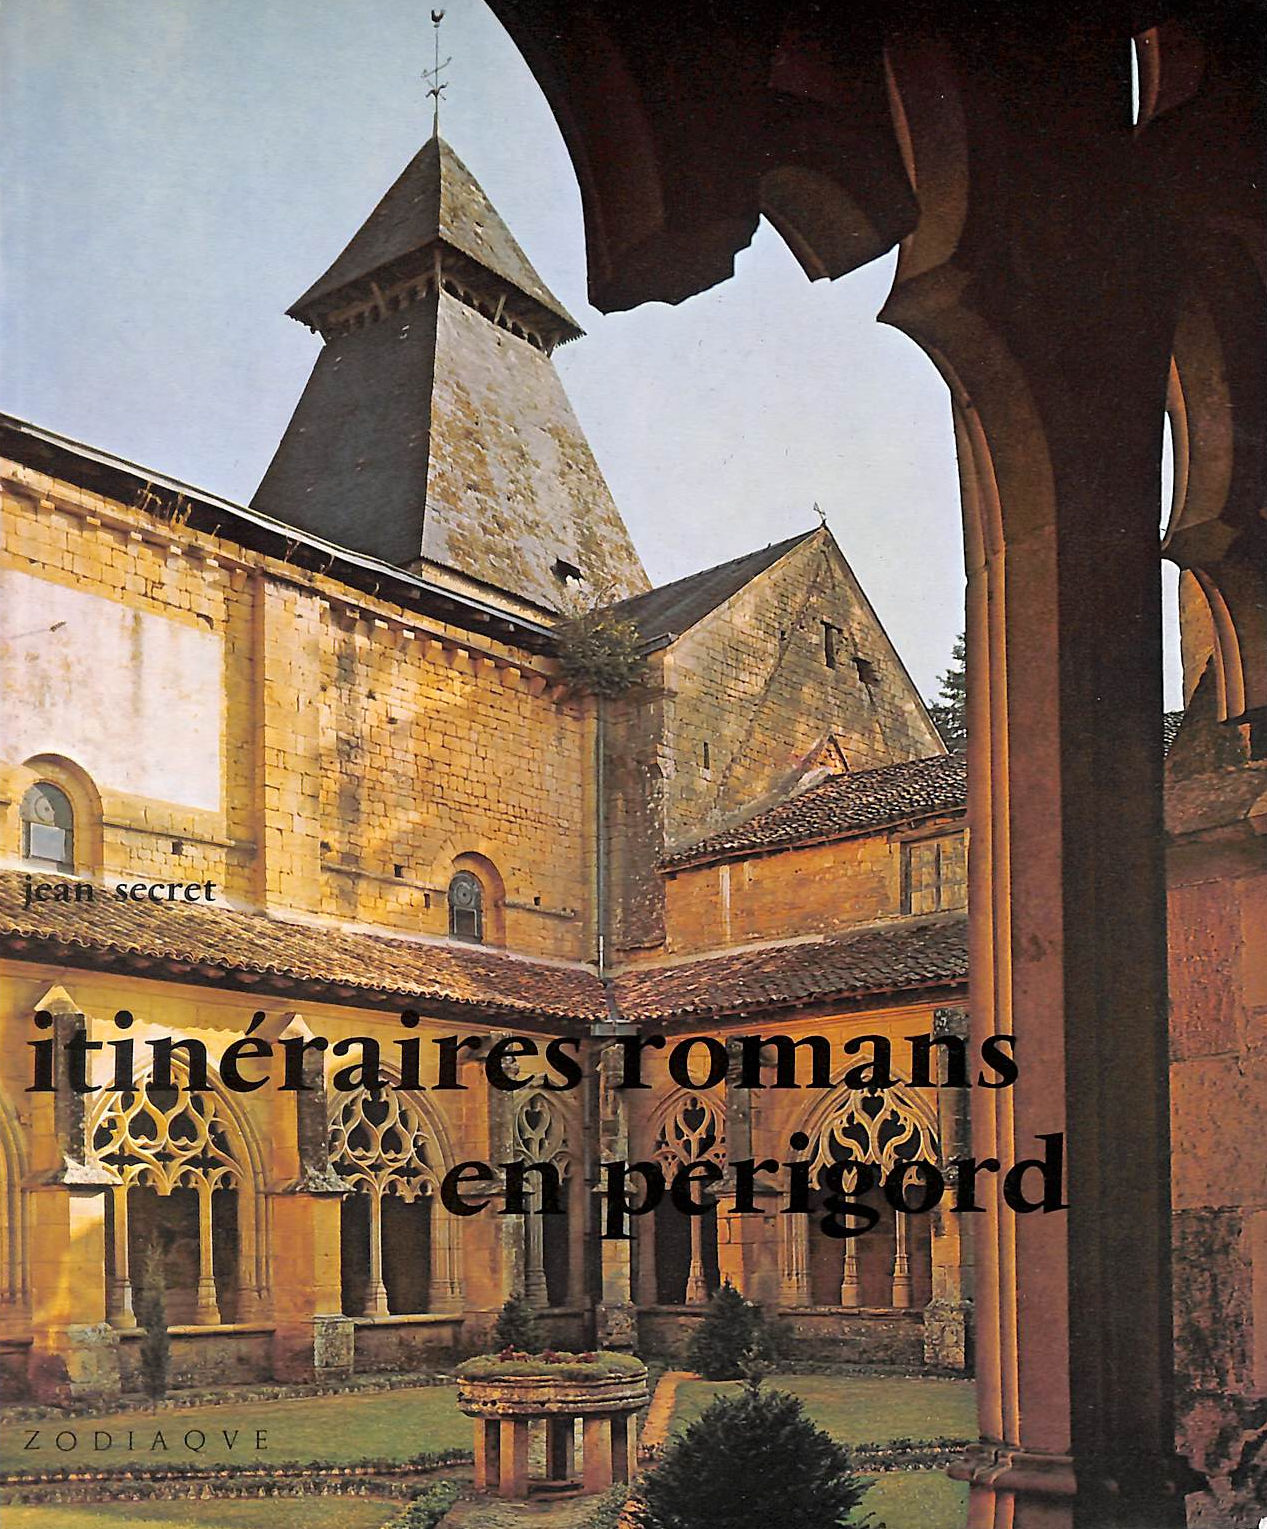 Image for Itineraires romans en Perigord